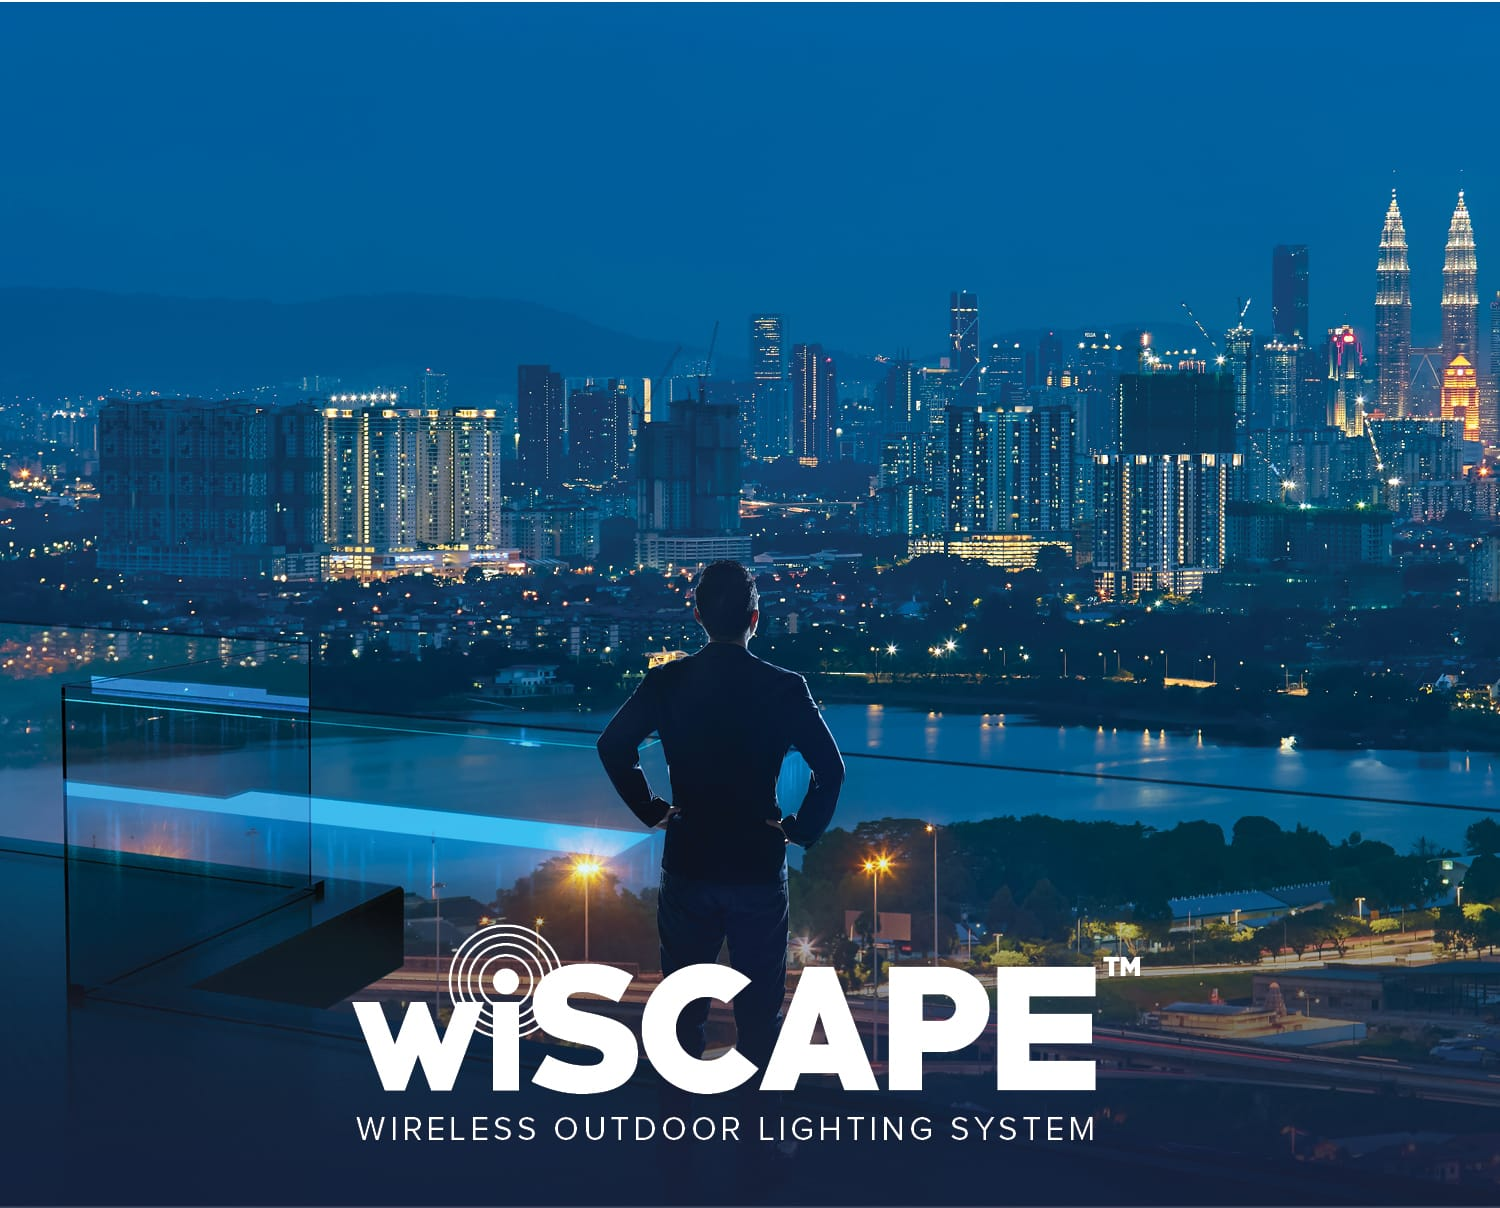 wiSCAPE